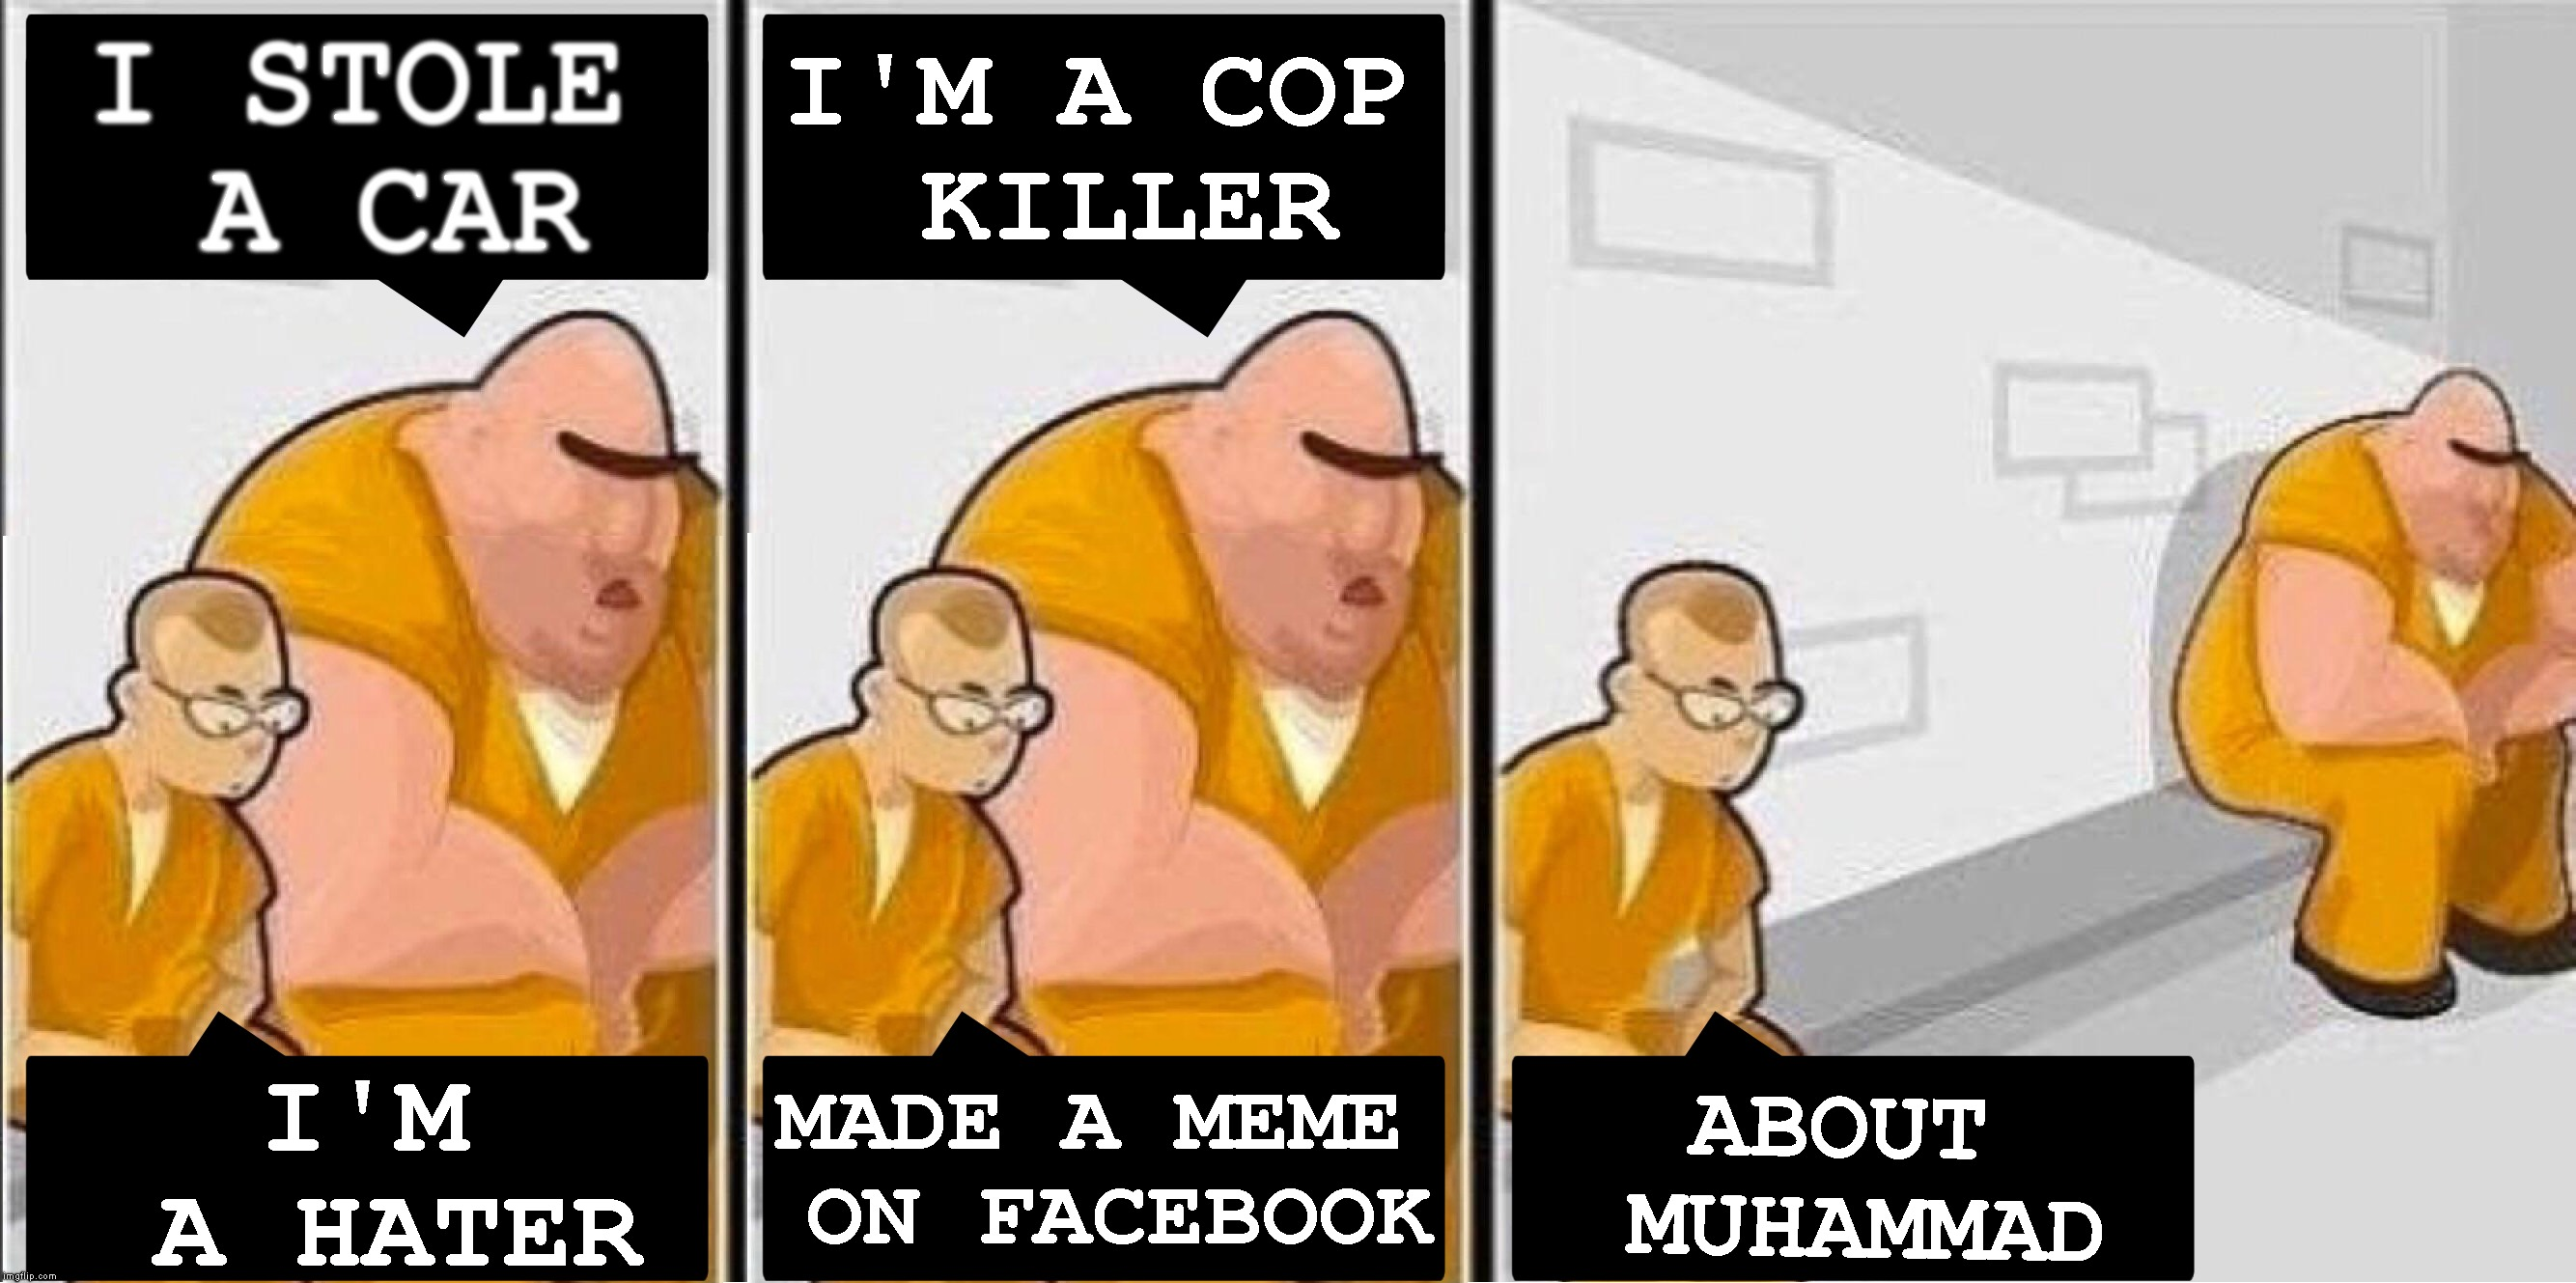 The Latest Reason I Got Banned On Facebook | I STOLE A CAR I'M A HATER I'M A COP KILLER MADE A MEME ON FACEBOOK ABOUT MUHAMMAD | image tagged in prisoners,facebook,muhammad,islam,muslims,facebook jail | made w/ Imgflip meme maker